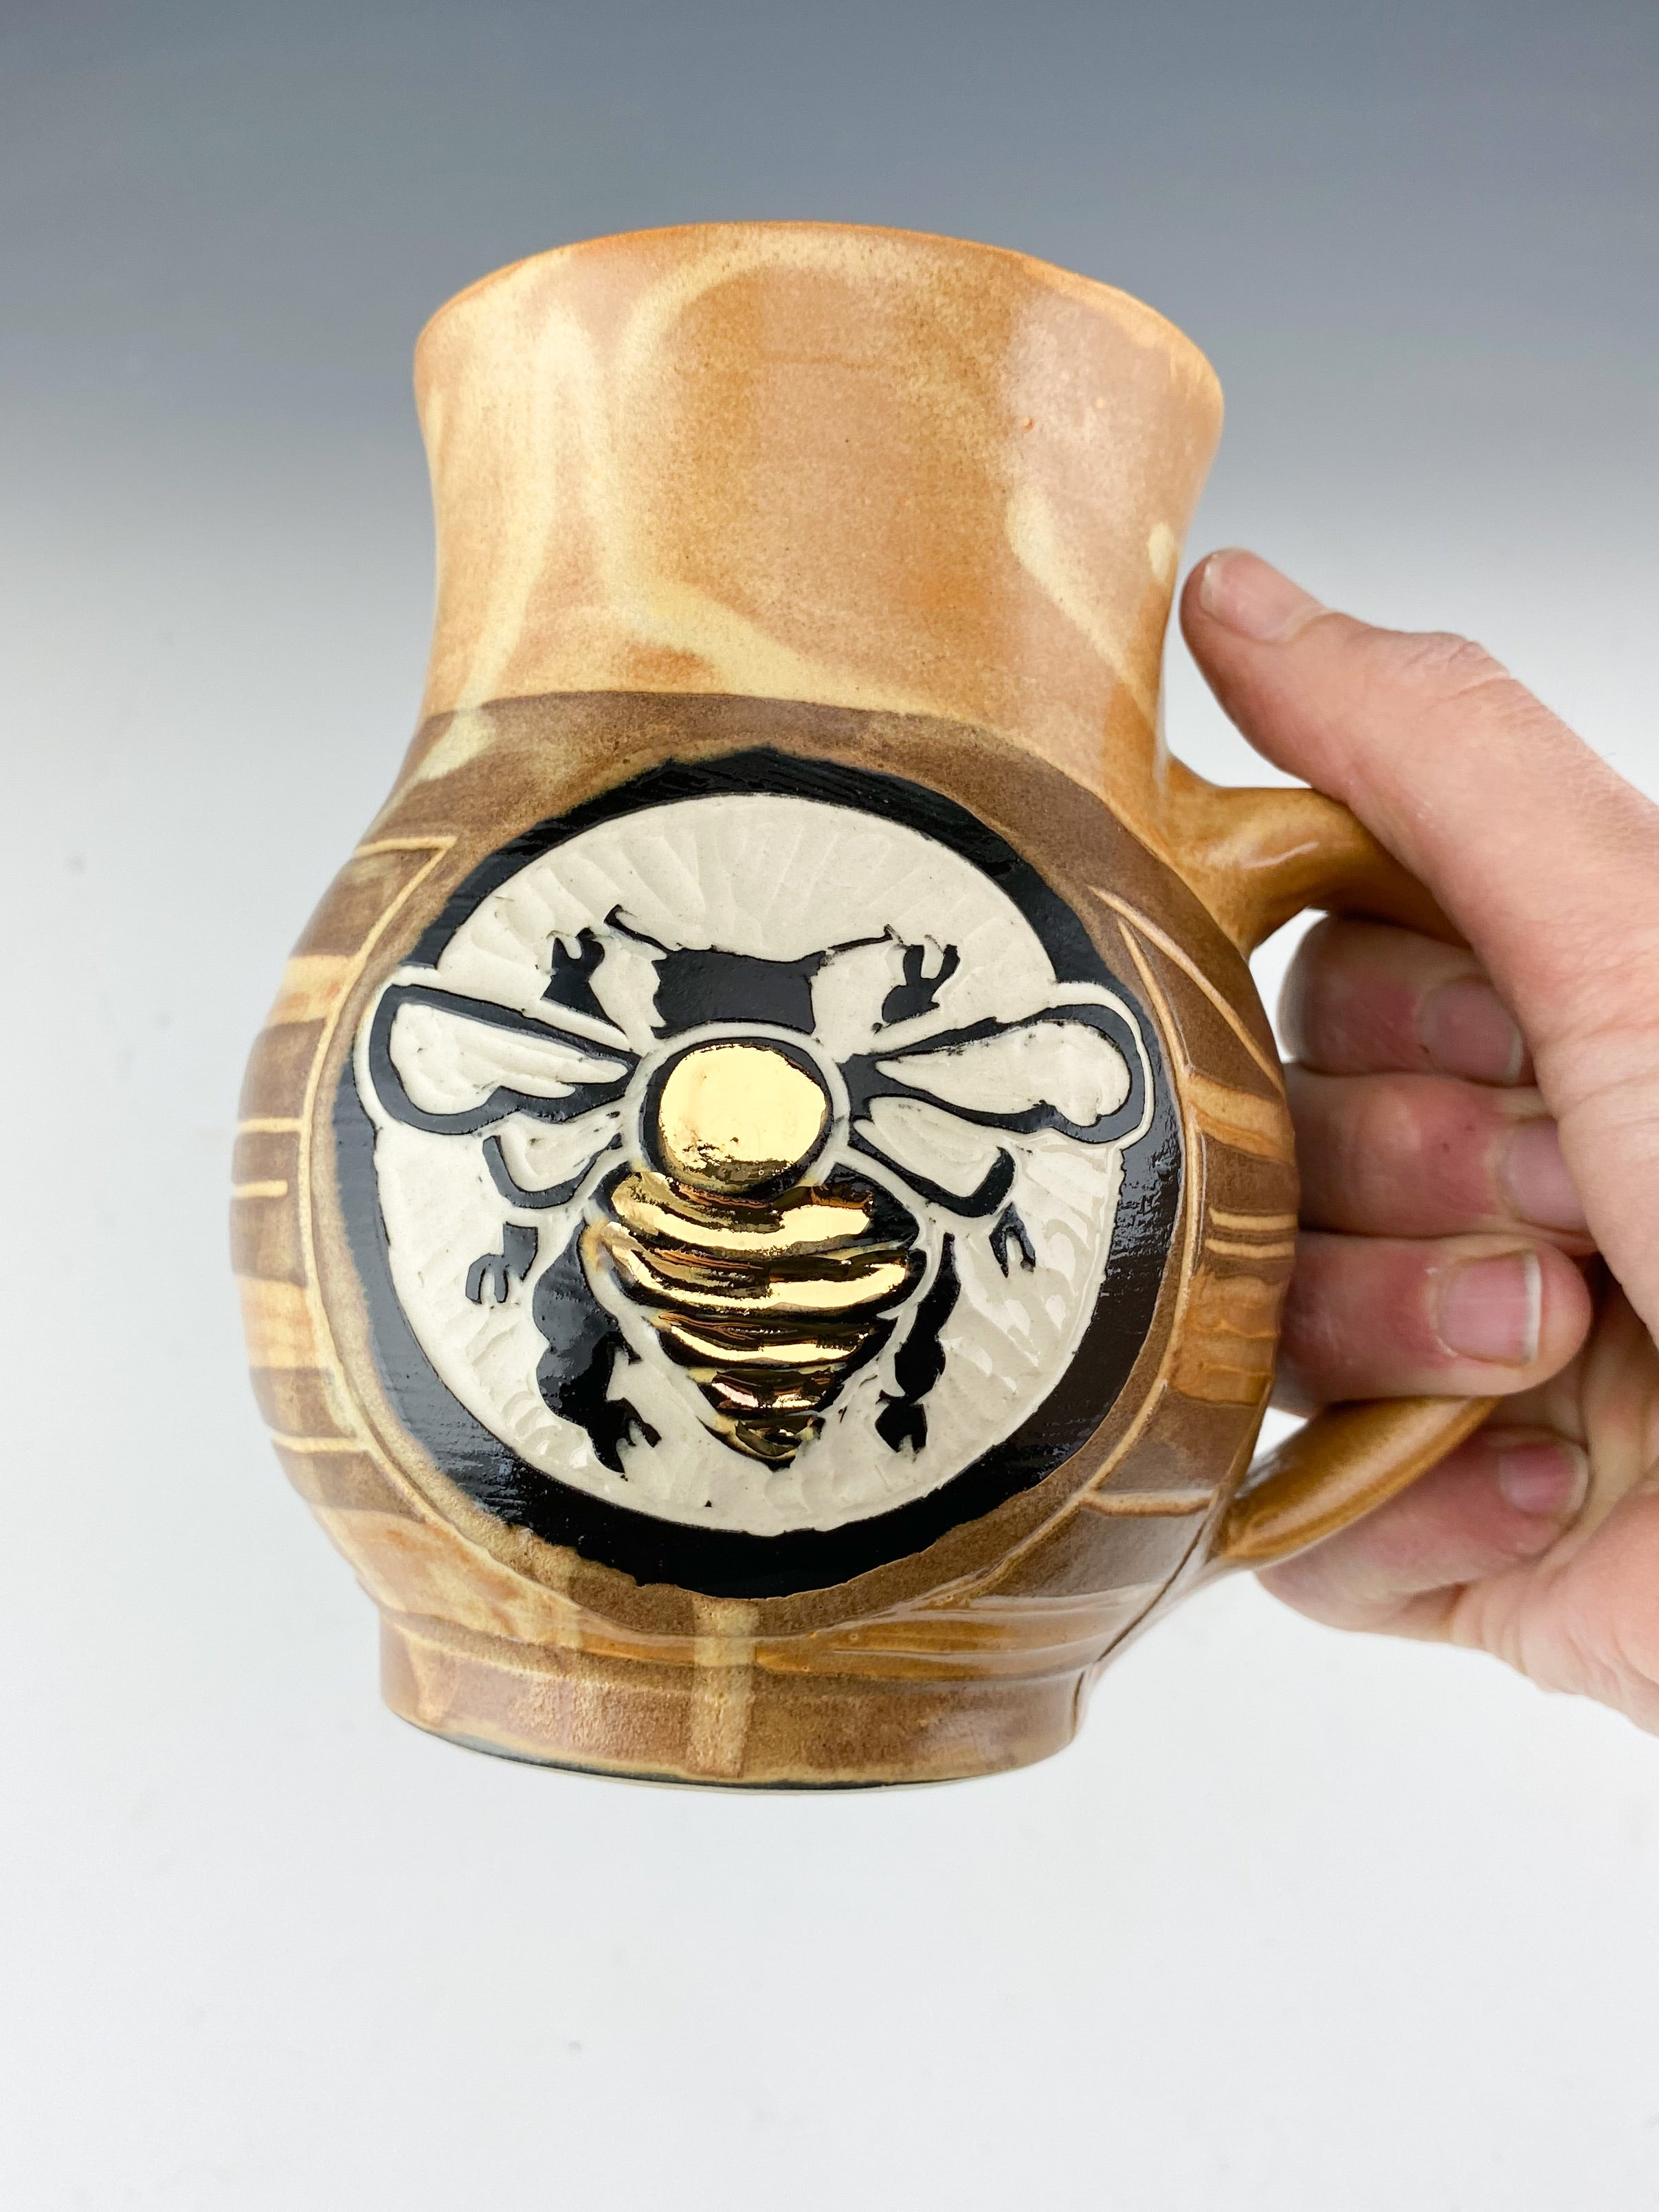 Gold Luster Sgraffito Handmade Pottery Bee Mug in Gold